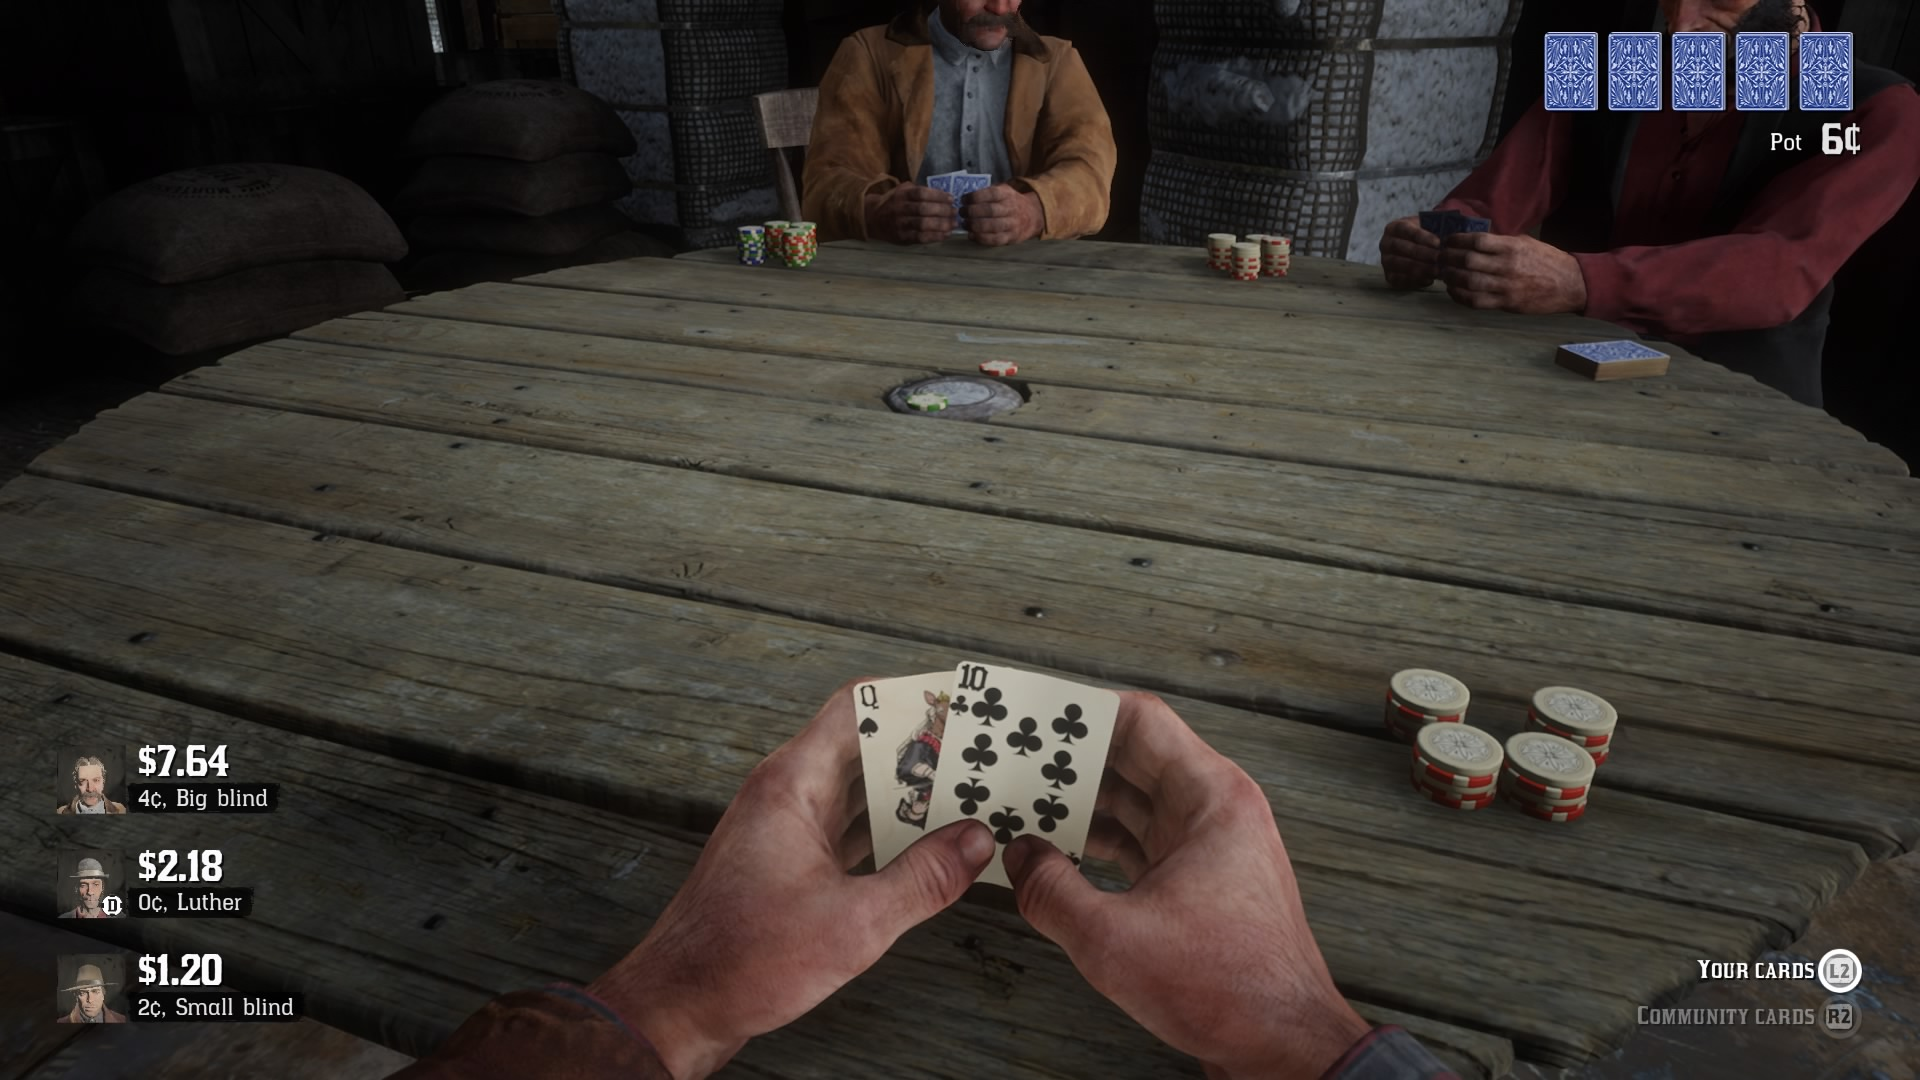 A Day in the Life of a Red Dead Redemption 2 NPC